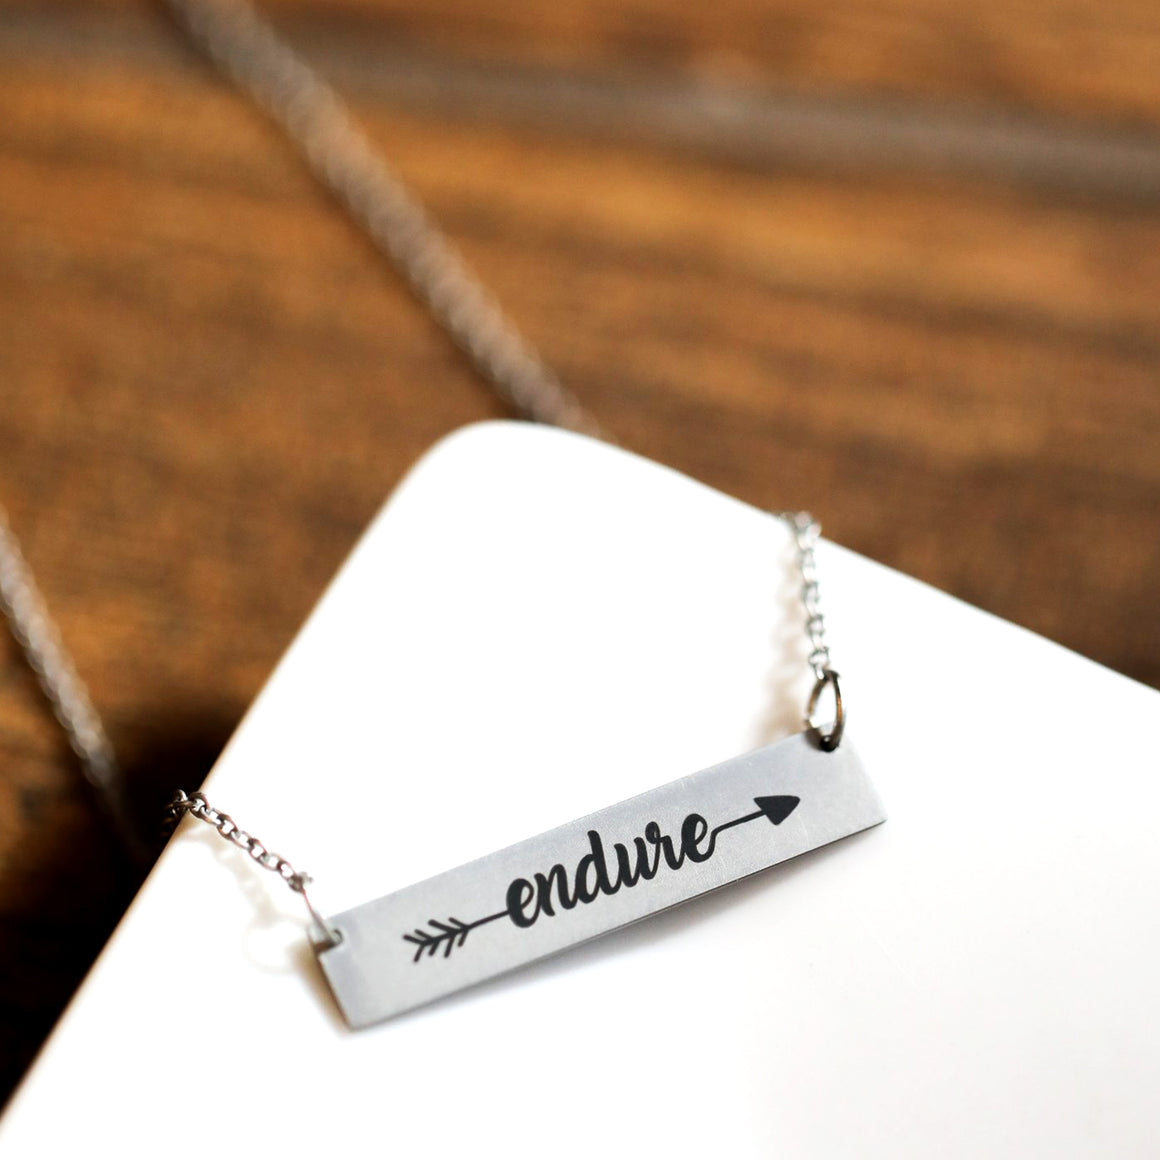 Endure To The End - Endure Bar Necklace